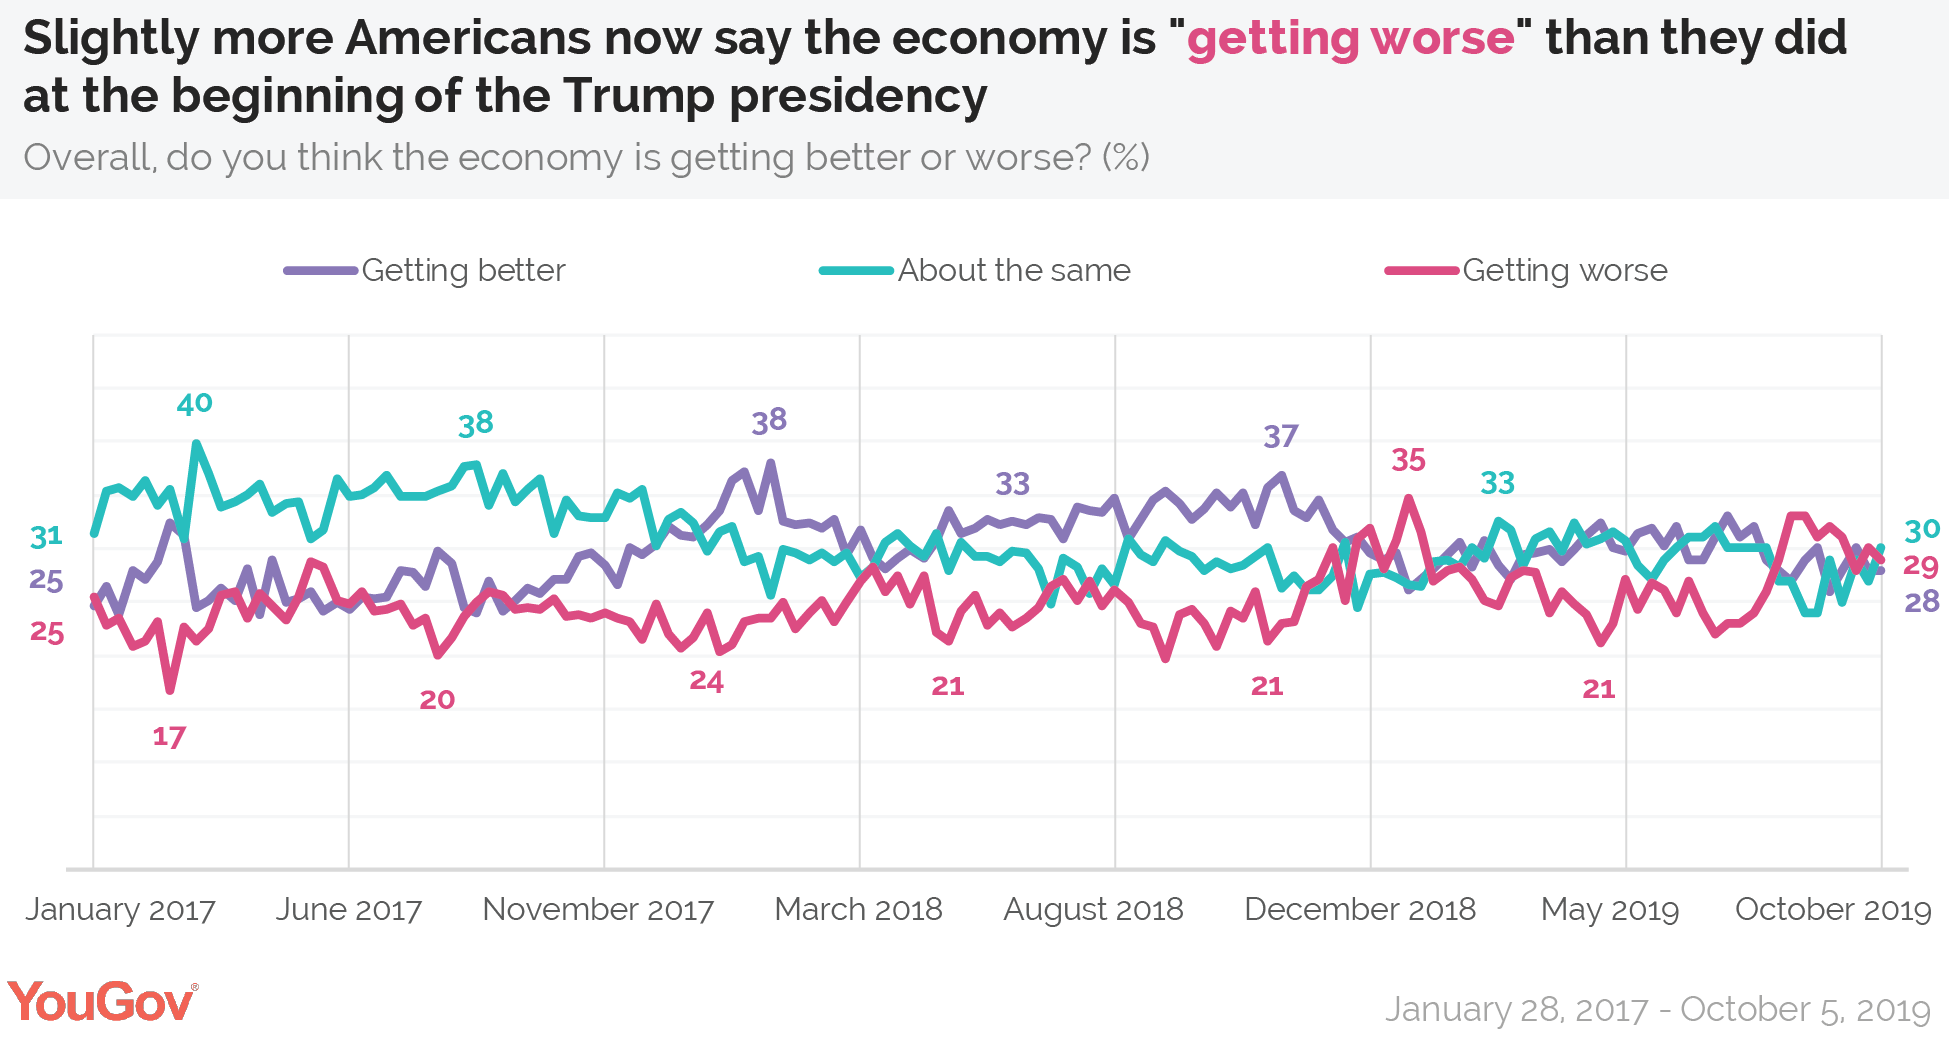 Slightly more Americans now say the economy is getting worse than they did at the beginning of the Trump presidency